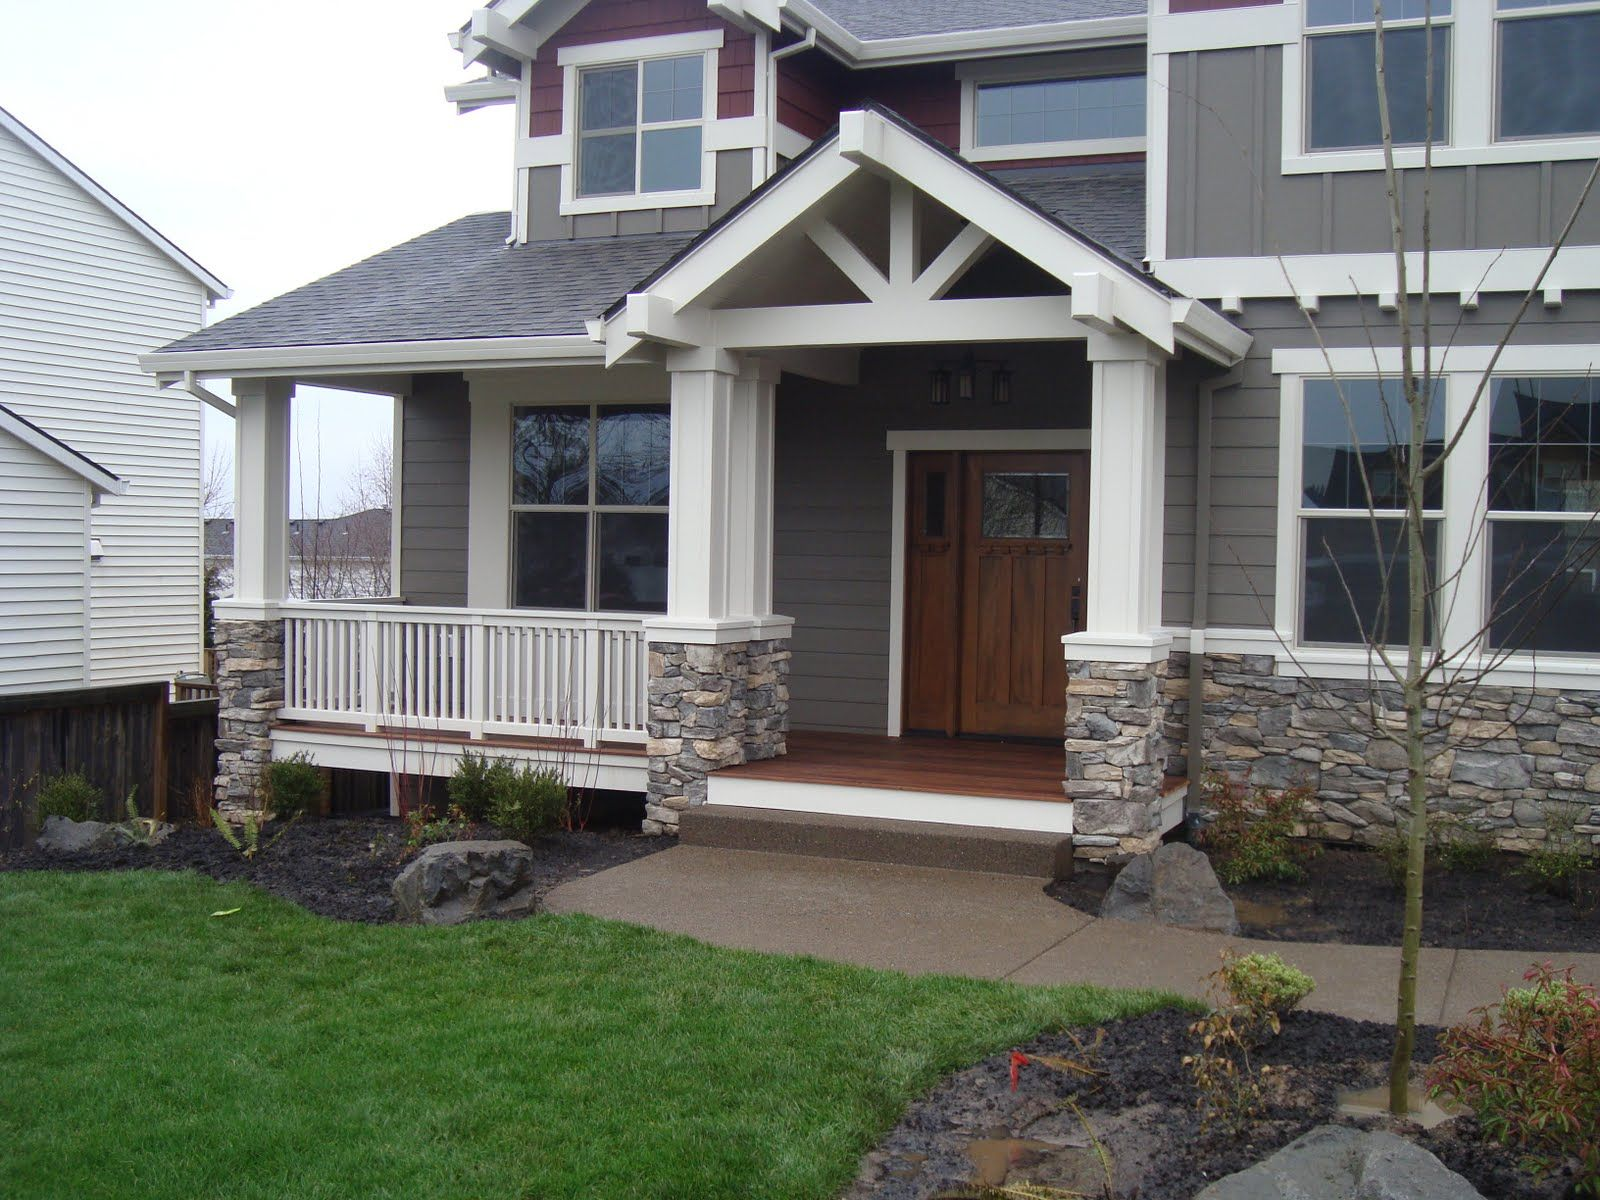 garage exterior rock vaneer siding | Halgren Construction